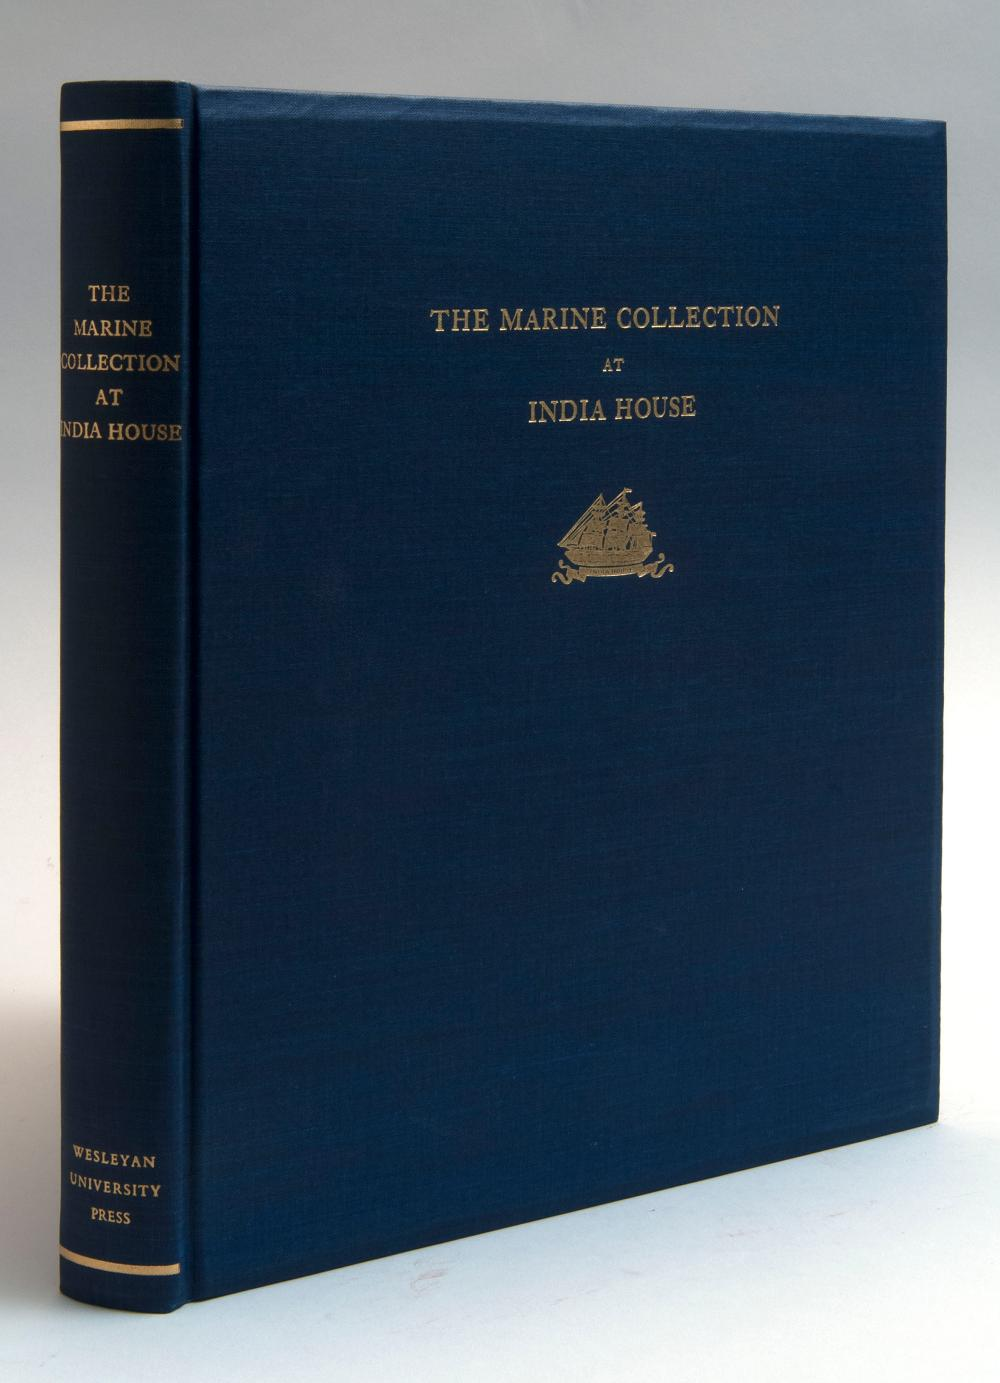 MARITIME BOOK A Descriptive Catalogue of the Marine Collection to Be Found at India House (Middletown, Ct.: Wesleyan University Pres...